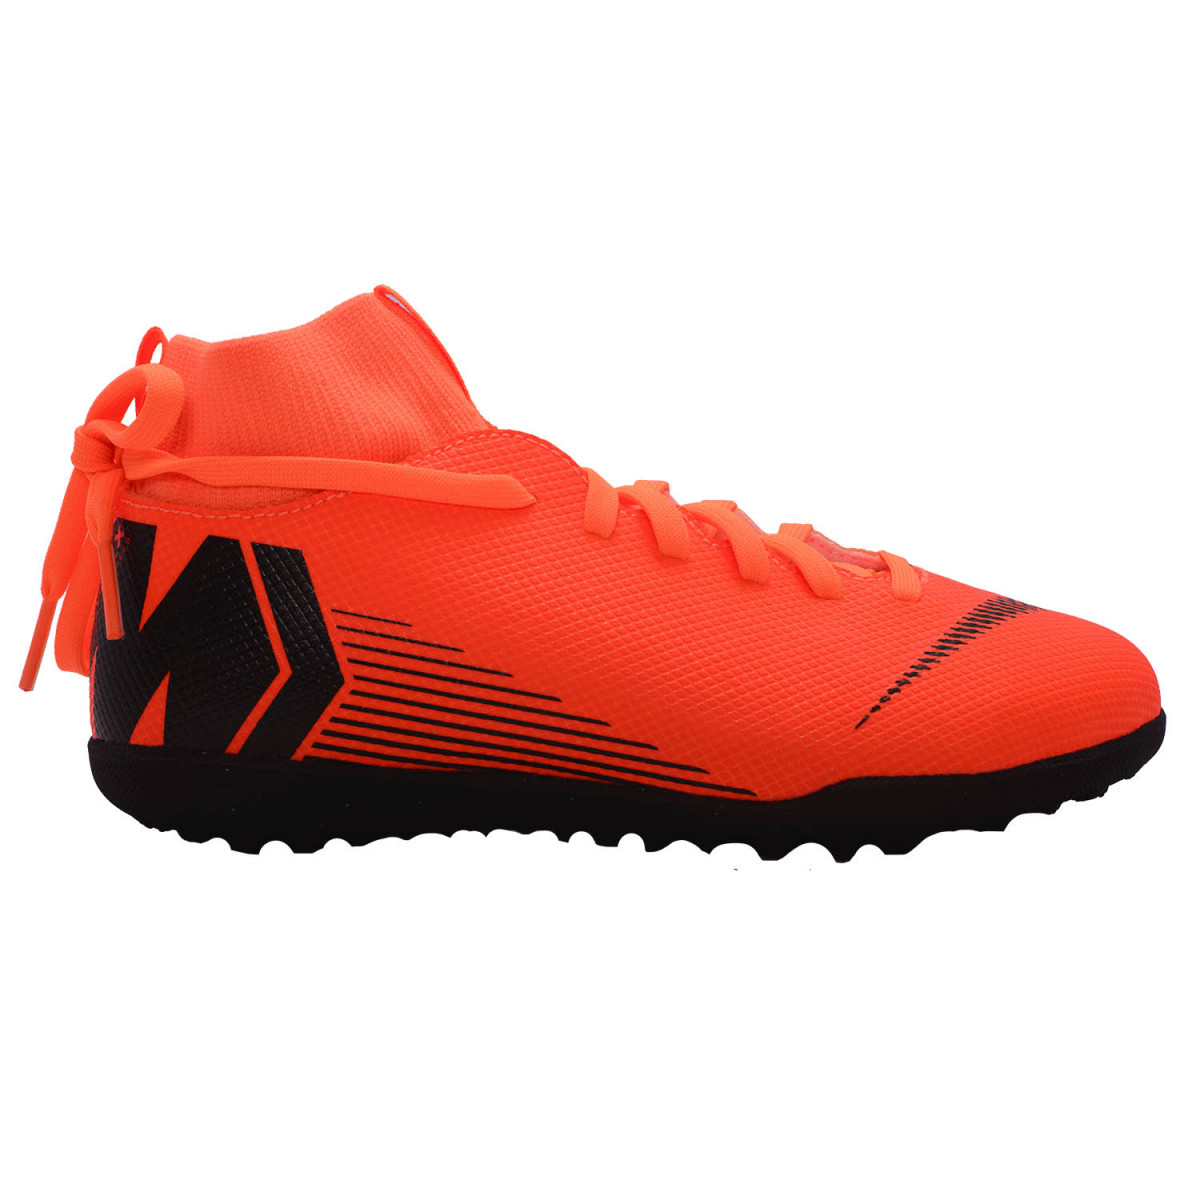 4ceab9779 Botines Nike Superflyx 6 Club Tf - Nike - Marca